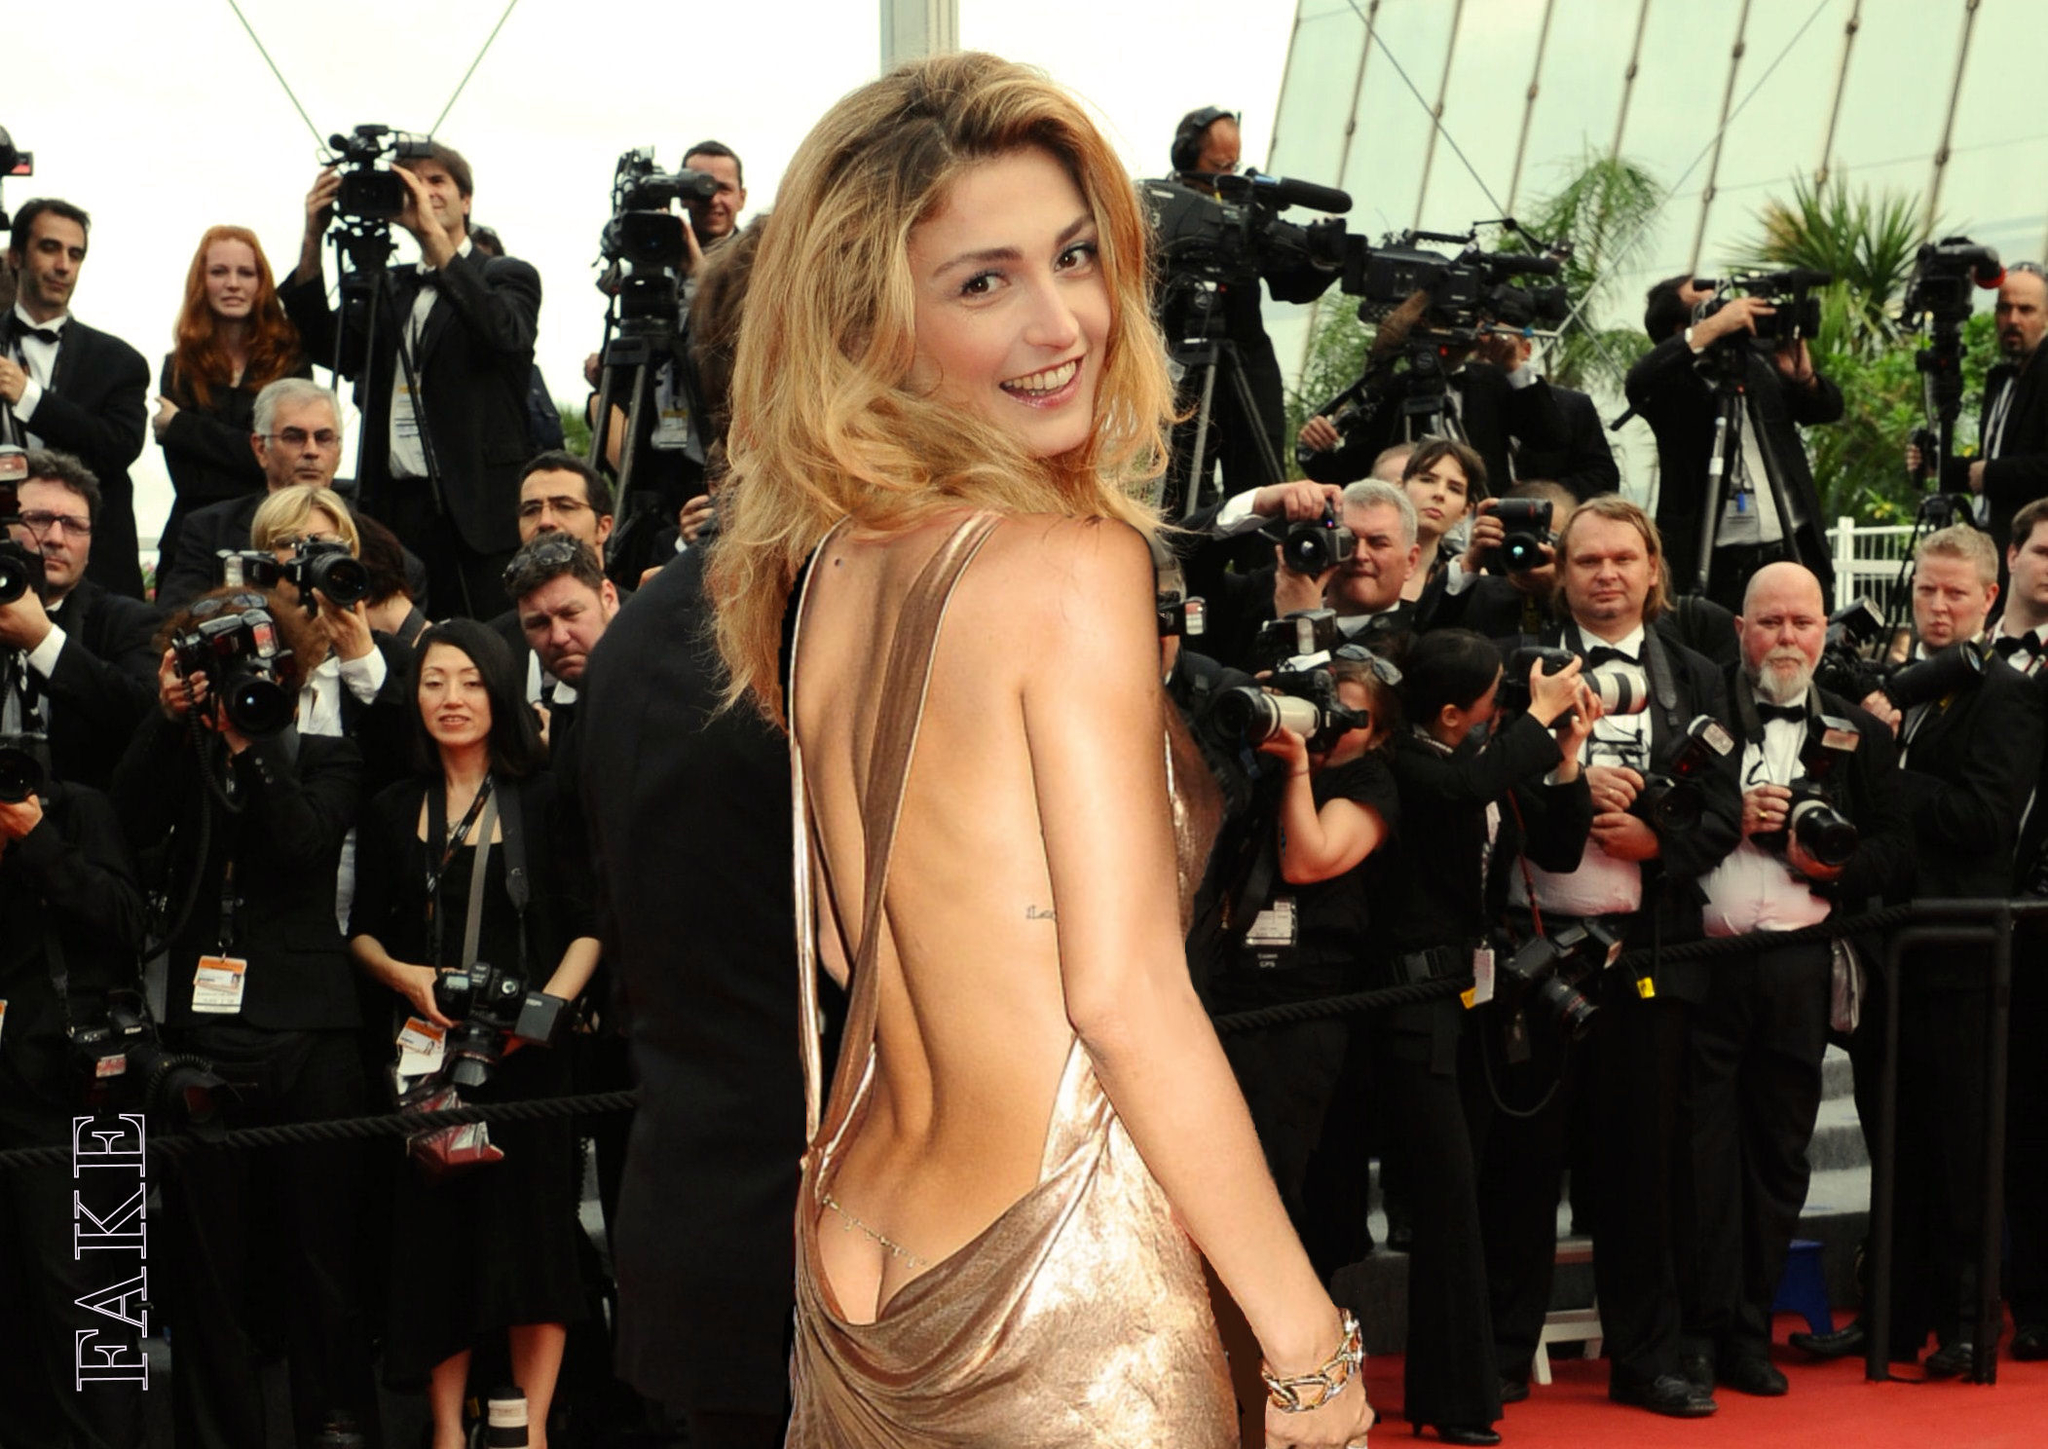 julie gayet tous les messages sur julie gayet photos truqu es sexy ou amusantes. Black Bedroom Furniture Sets. Home Design Ideas